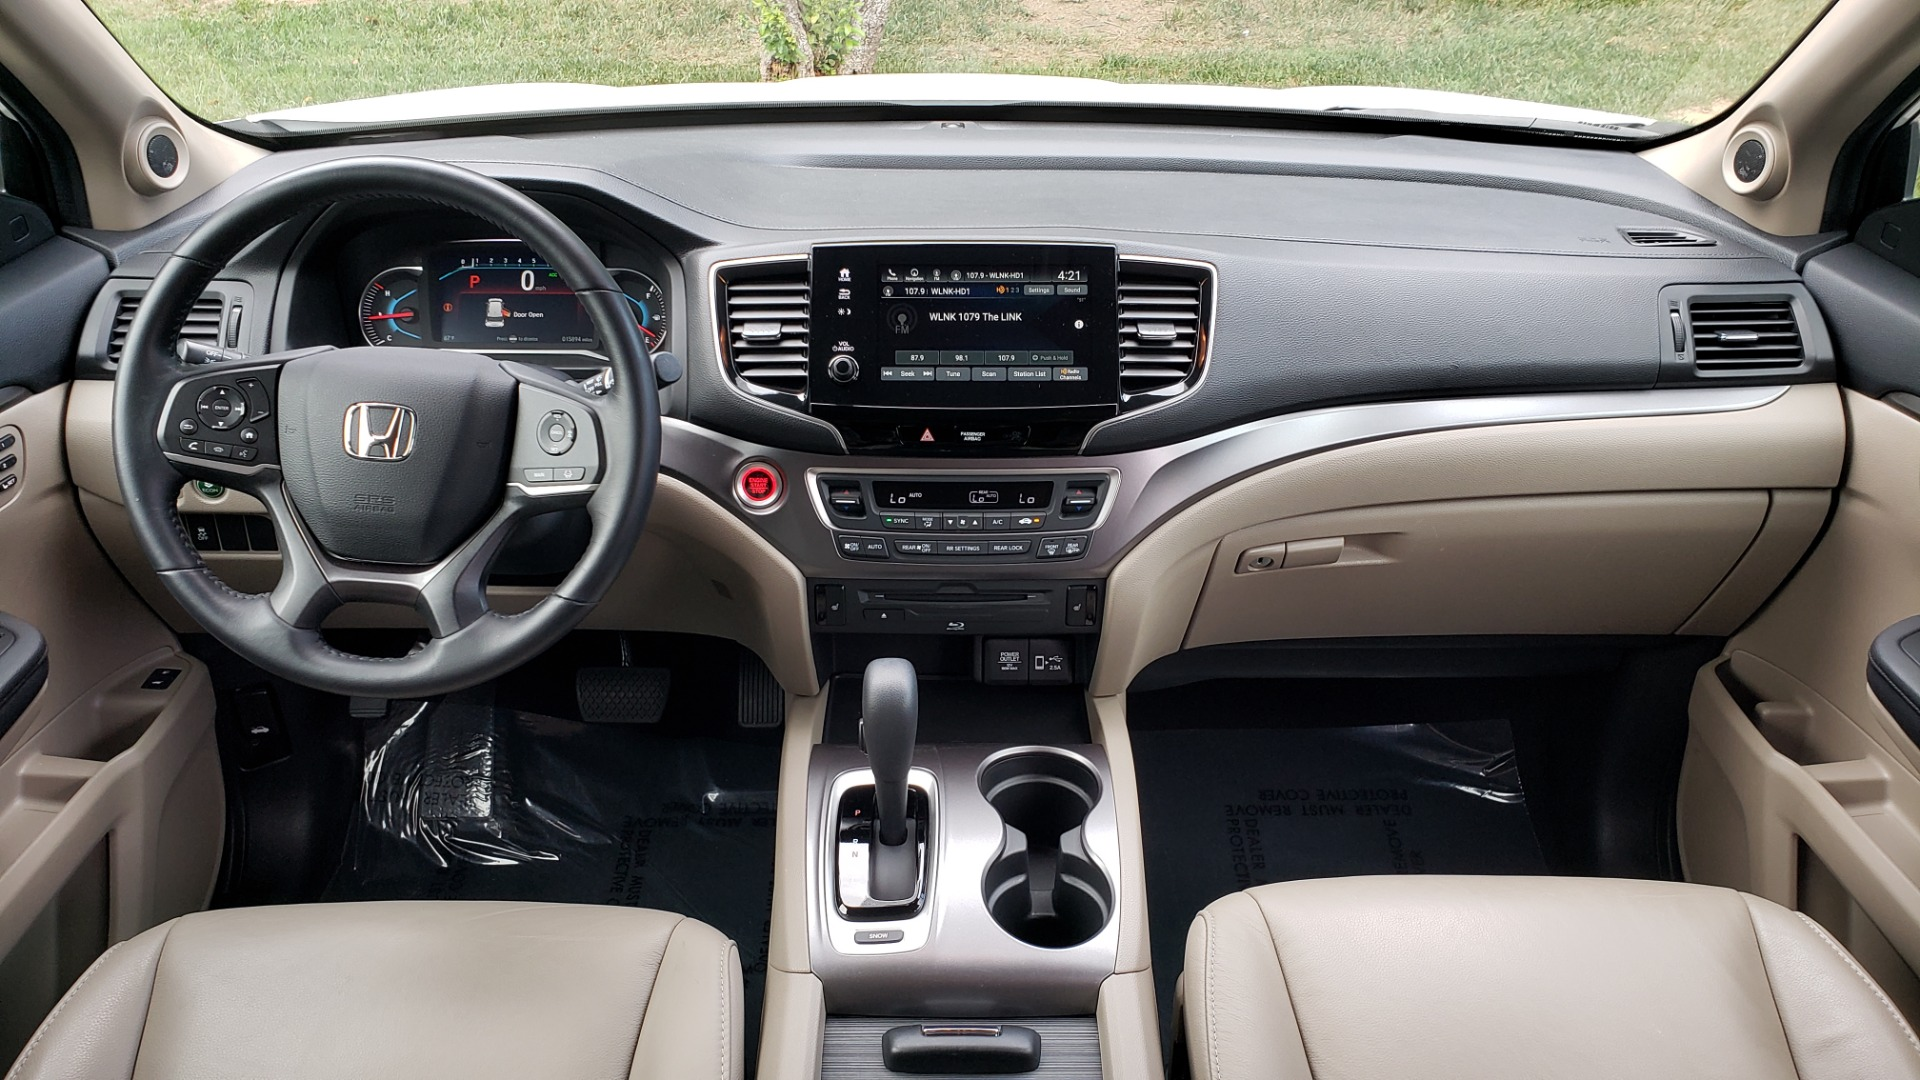 Used 2019 Honda PILOT EX-L / V6 / NAV / SUNROOF / DVD / 3-ROW / REARVIEW for sale Sold at Formula Imports in Charlotte NC 28227 85